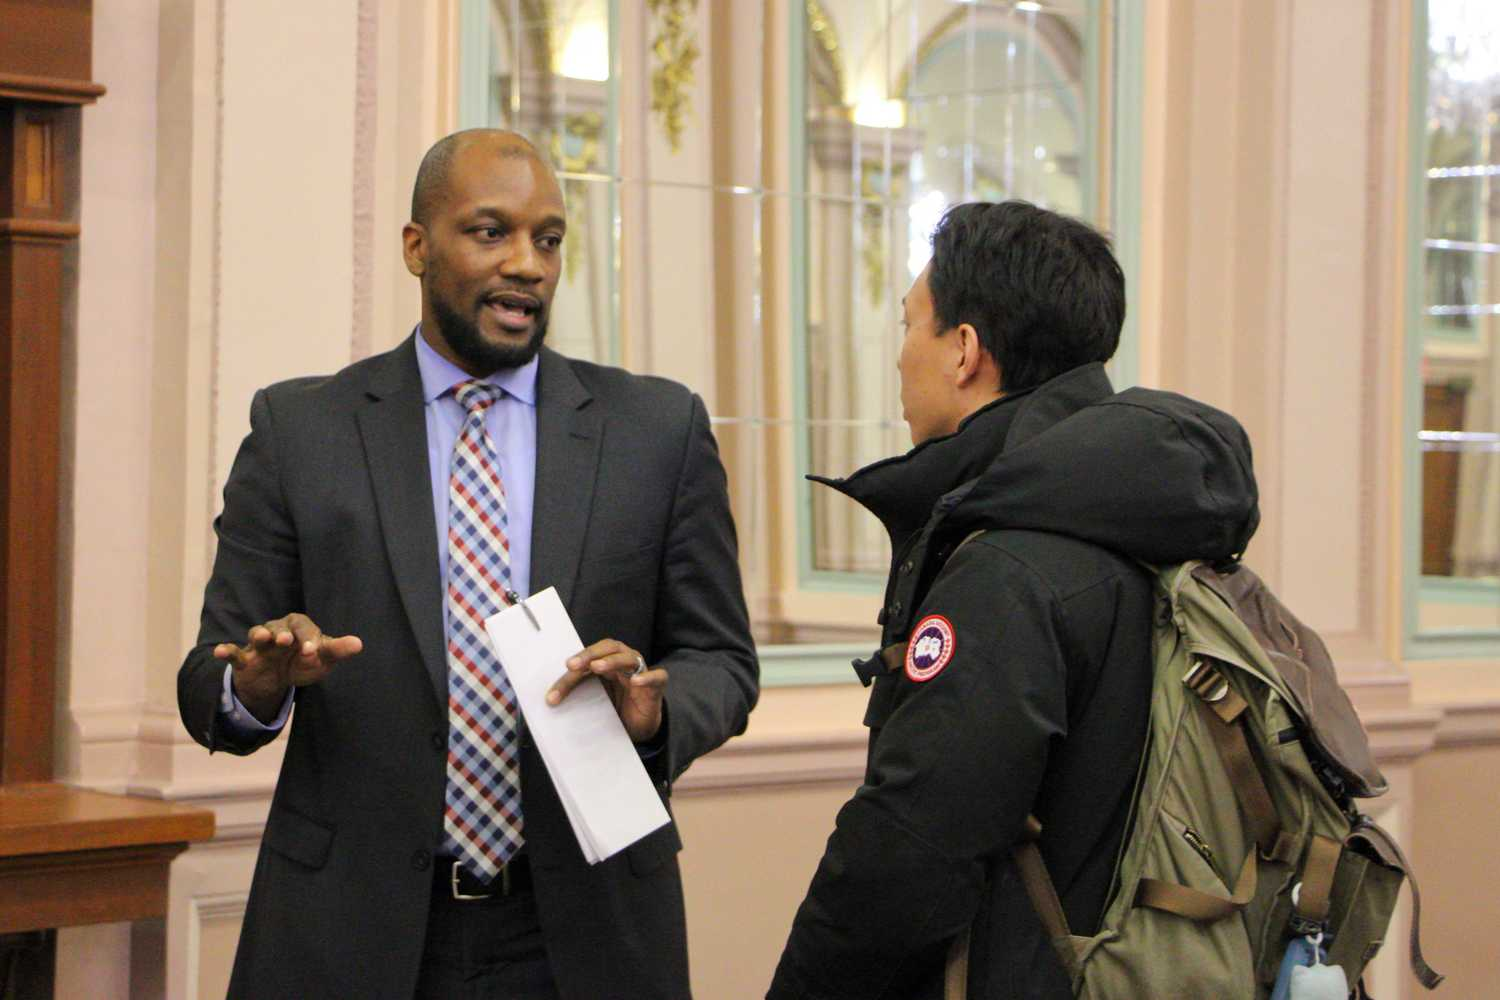 Dean of Students Kenyon Bonner, pictured here in March 2017, spoke with The Pitt News Tuesday about the current state of Greek life on campus. (TPN File Photo)